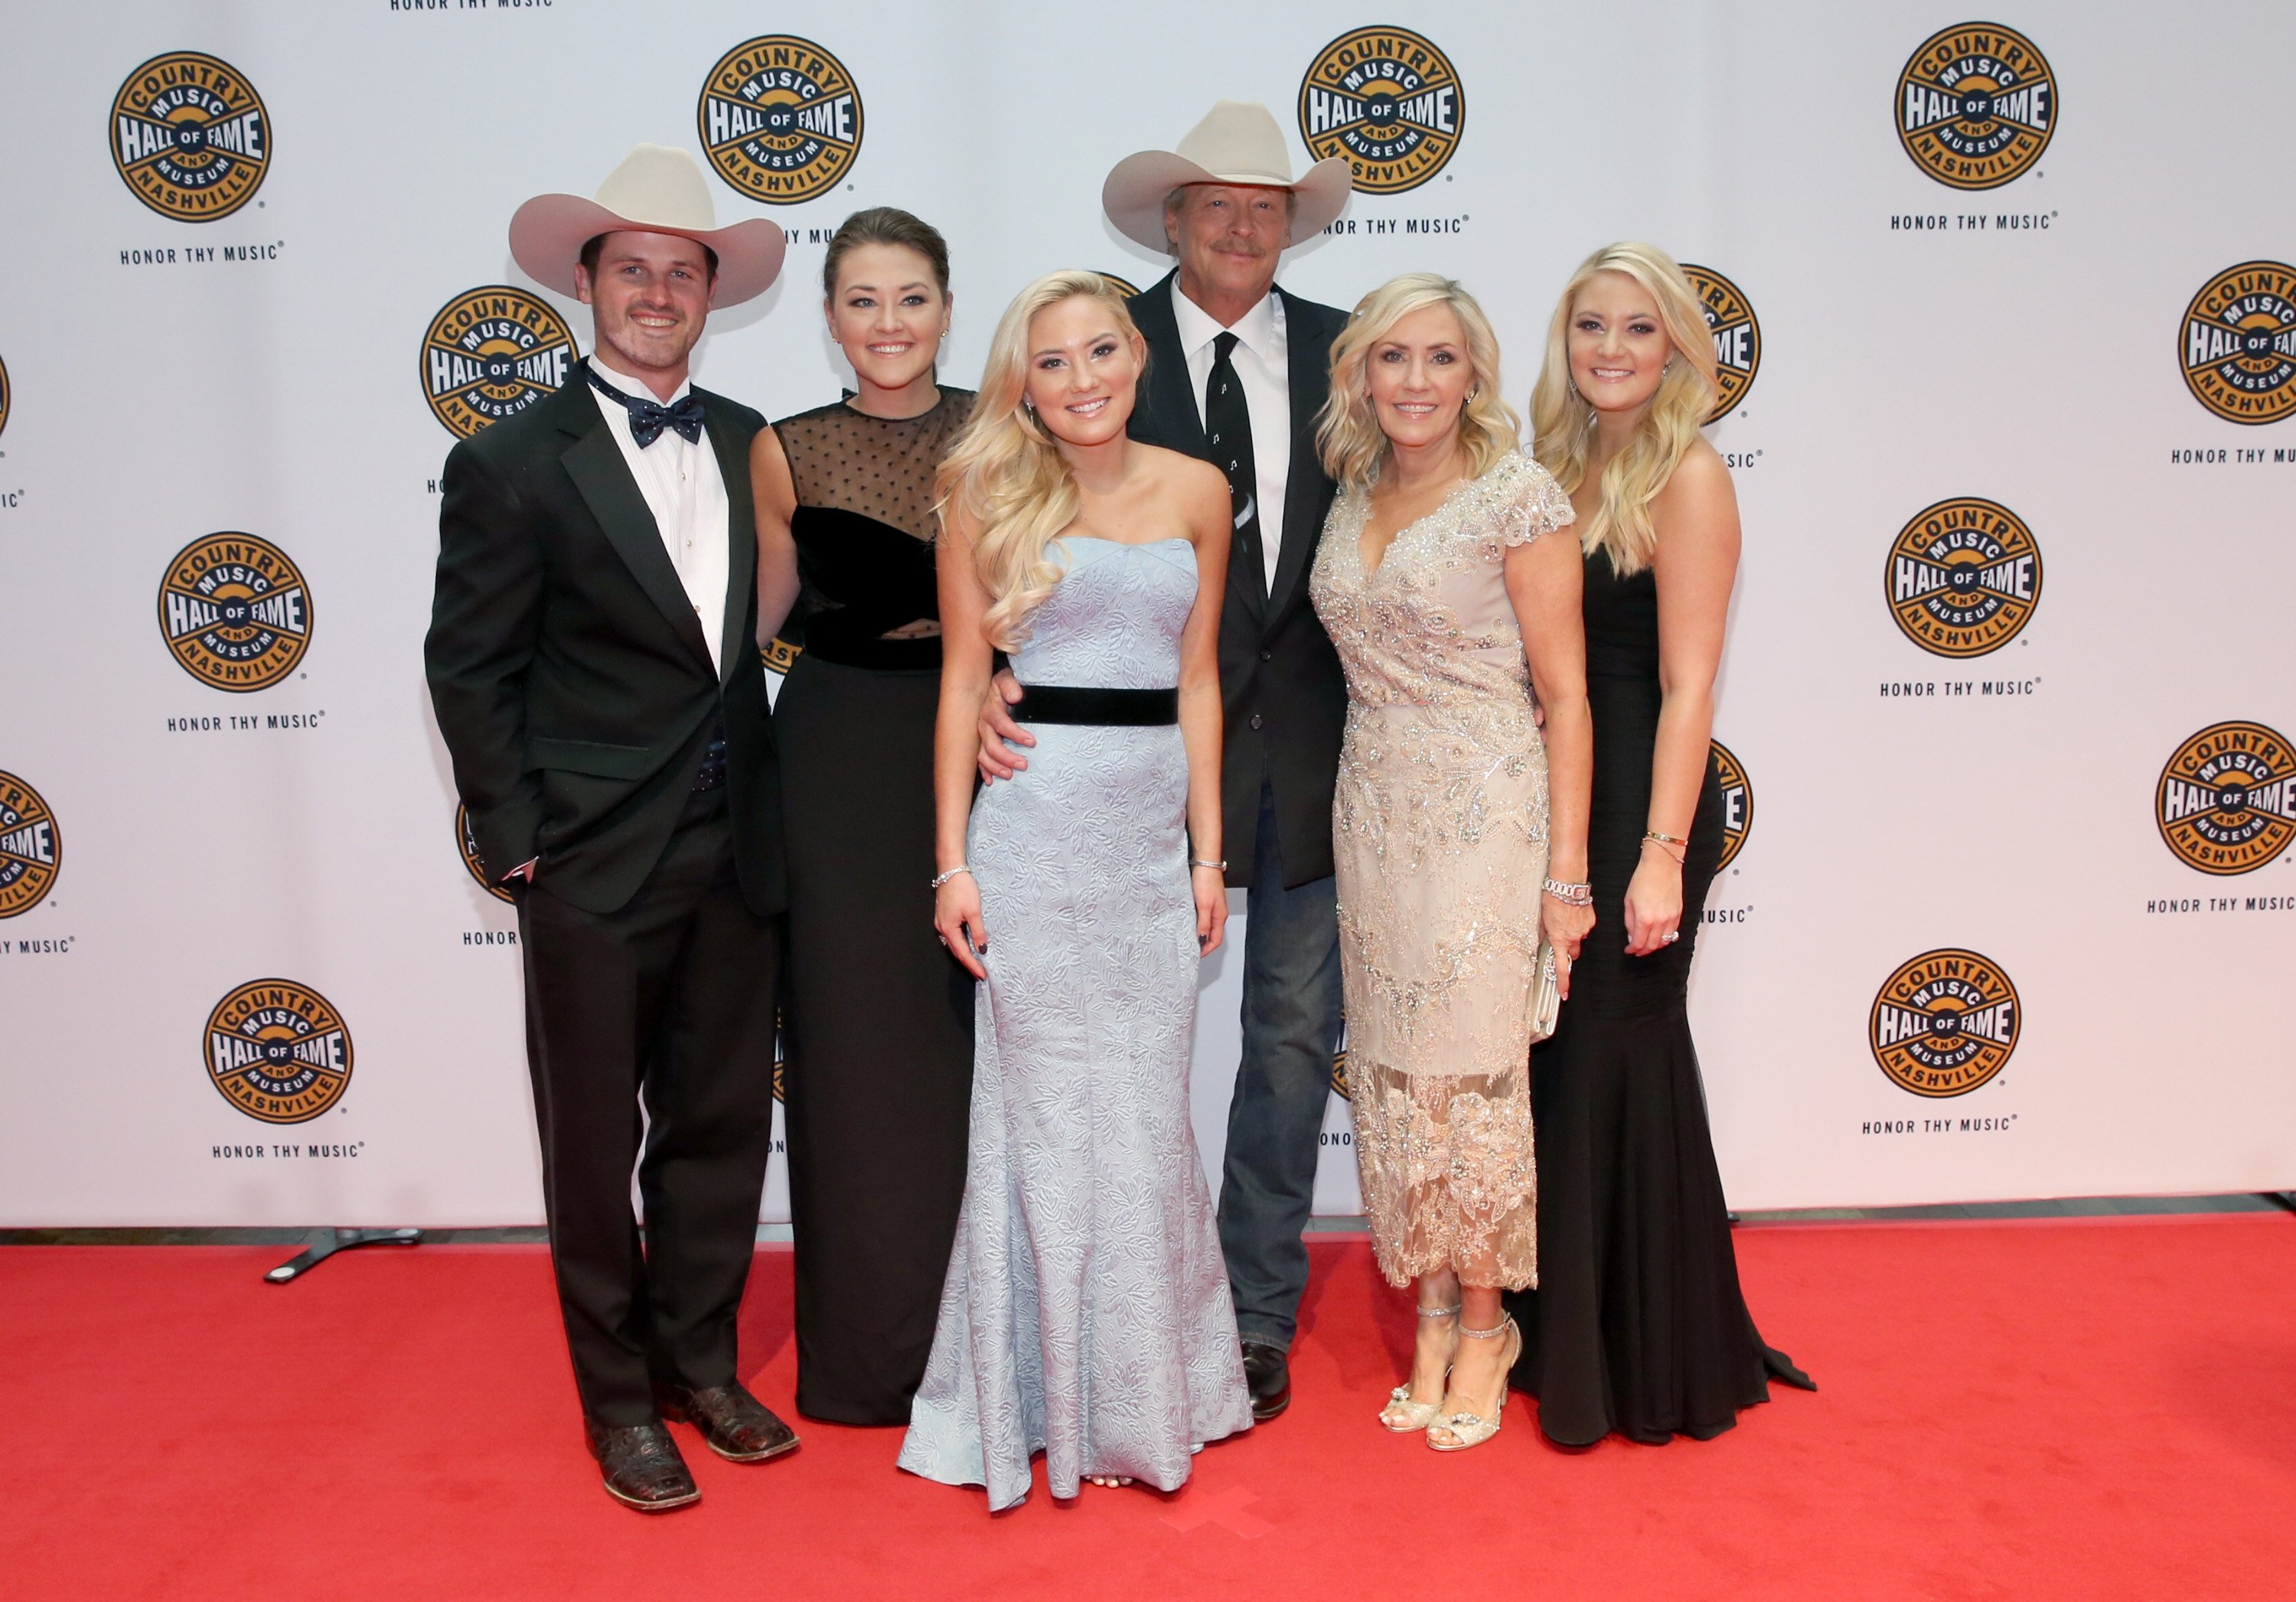 Alan Jackson and his family at a Country Music Hall of Fame event | Photo: Getty Images